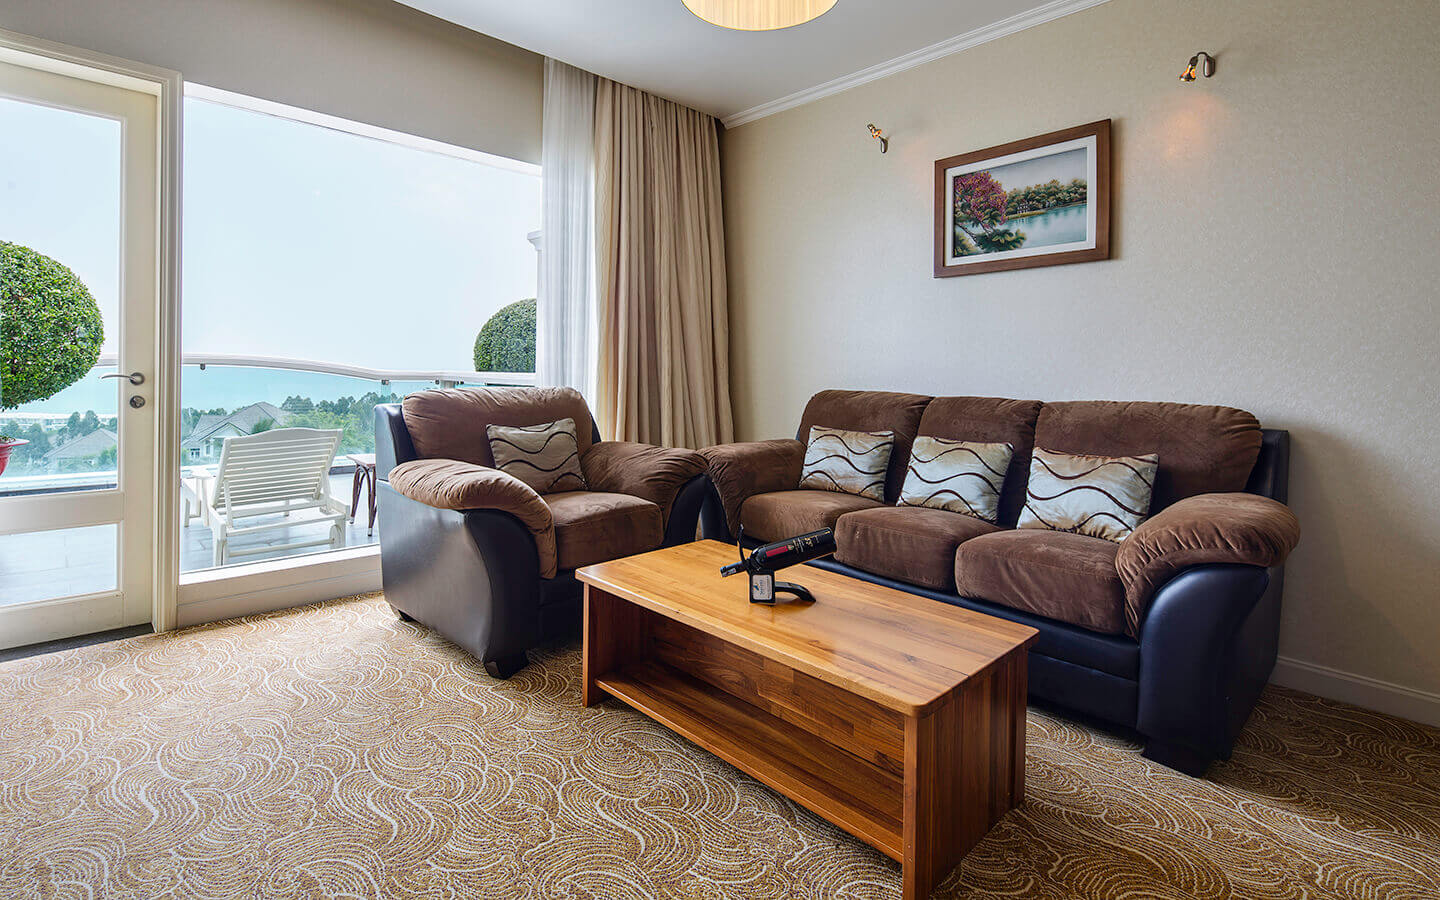 sofa premium delxe king sea links beach hotel